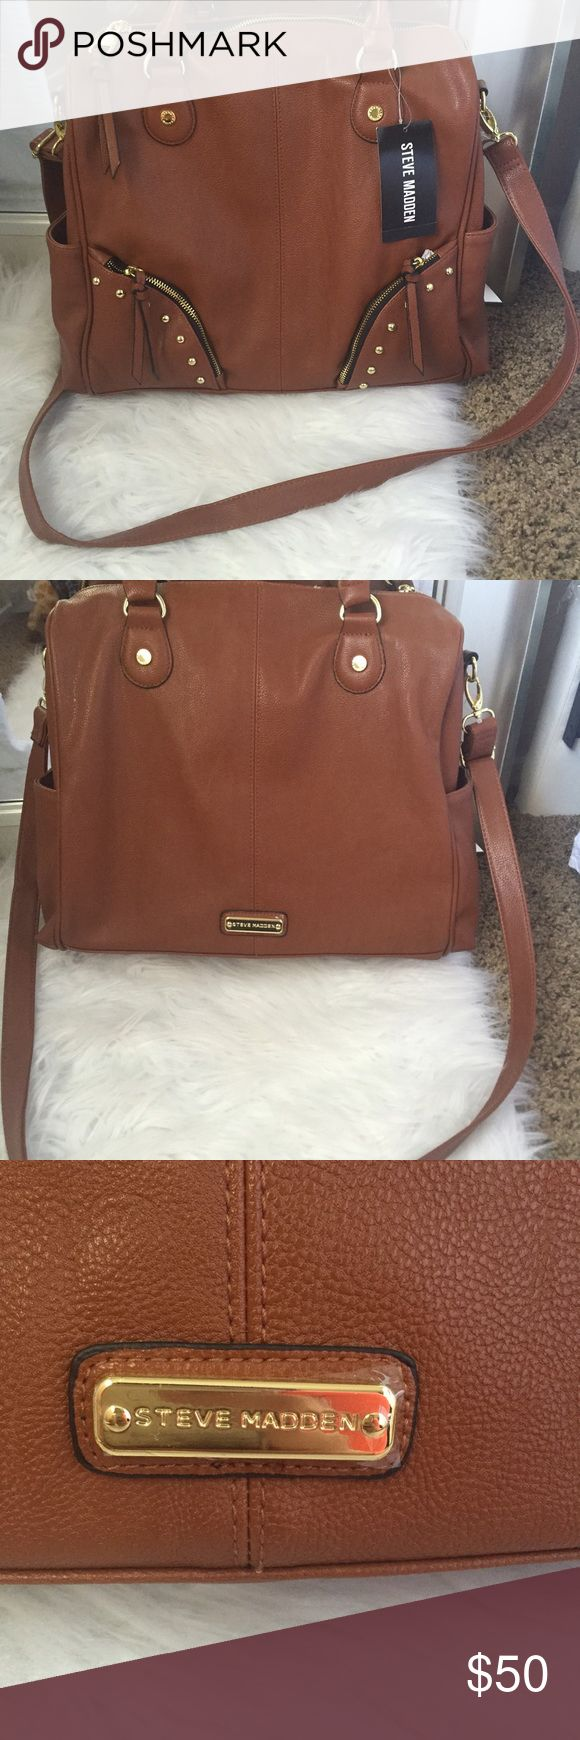 Steve Madden Purse | New! Brand new purse! It has a removable shoulder strap so you can wear it however you want. Price is firm! Steve Madden Bags Shoulder Bags